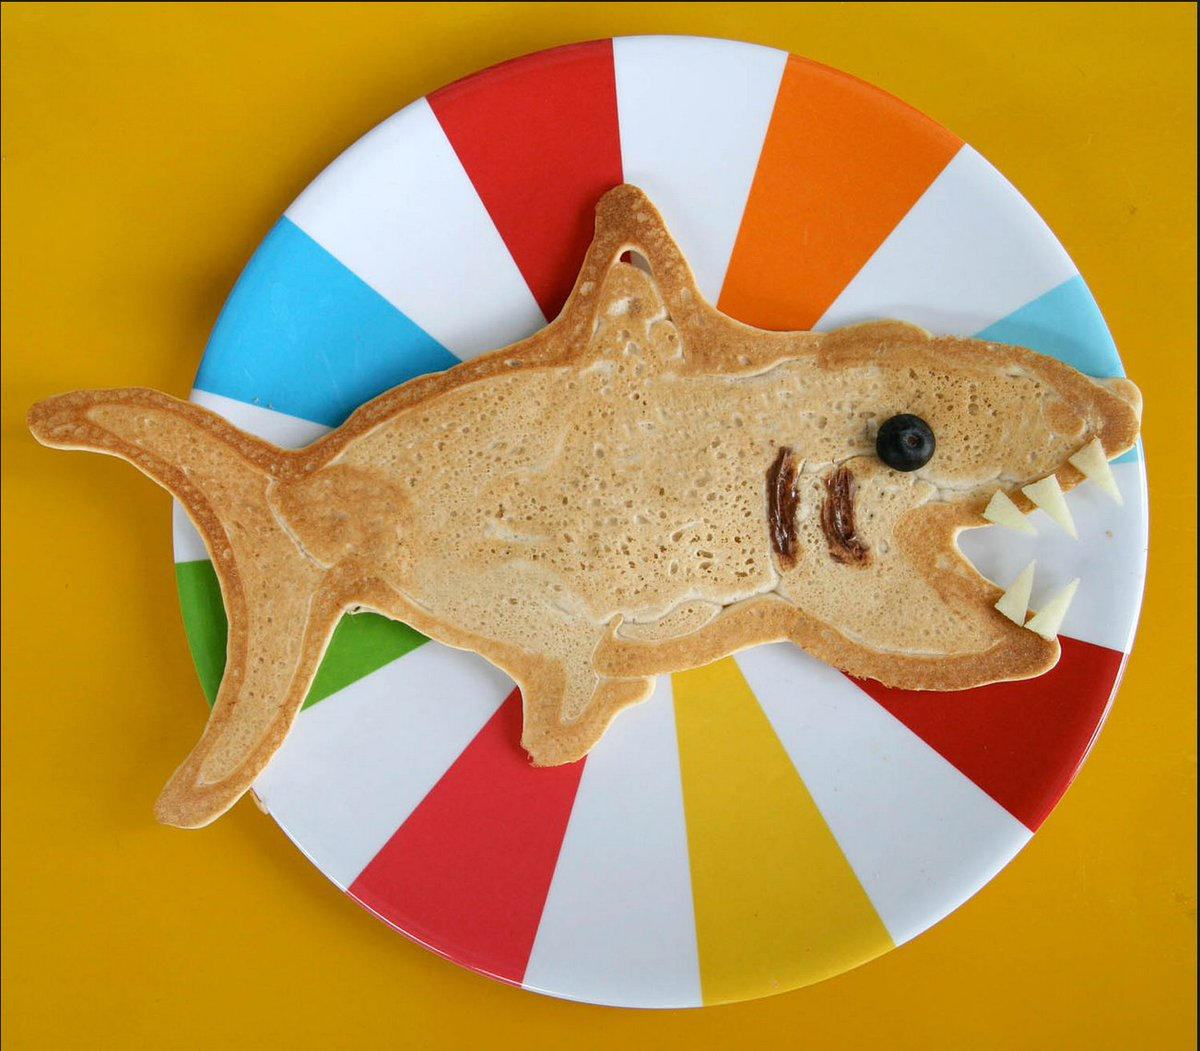 We want to see your JAWsome pancakes for #PancakeDay <br>http://pic.twitter.com/TgM1GXGh7j